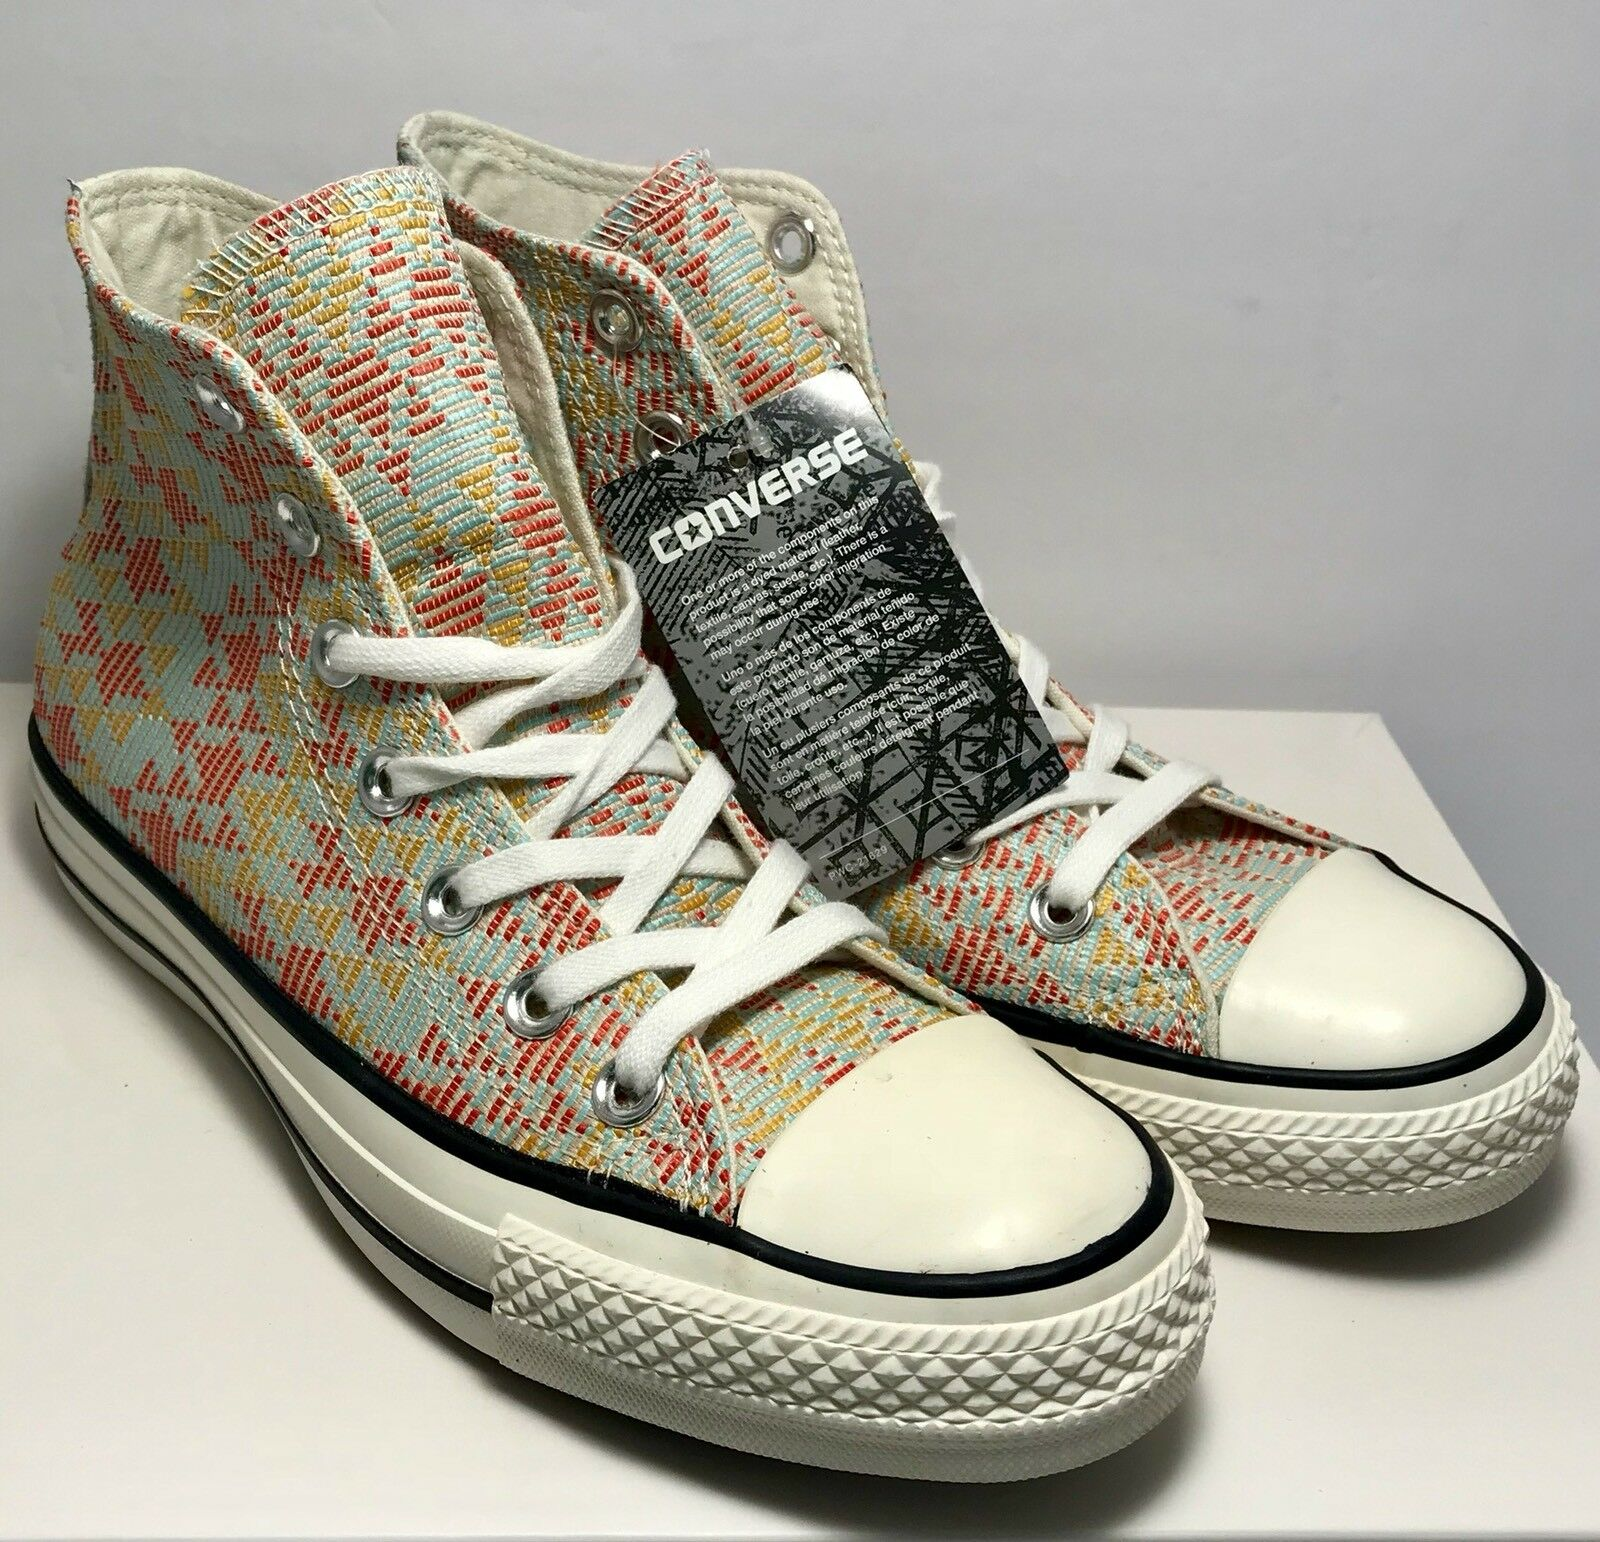 Converse Womens Size 7 Chuck Taylor All Star Star Star Hi Natural Weave shoes Sneakers 86c6a6